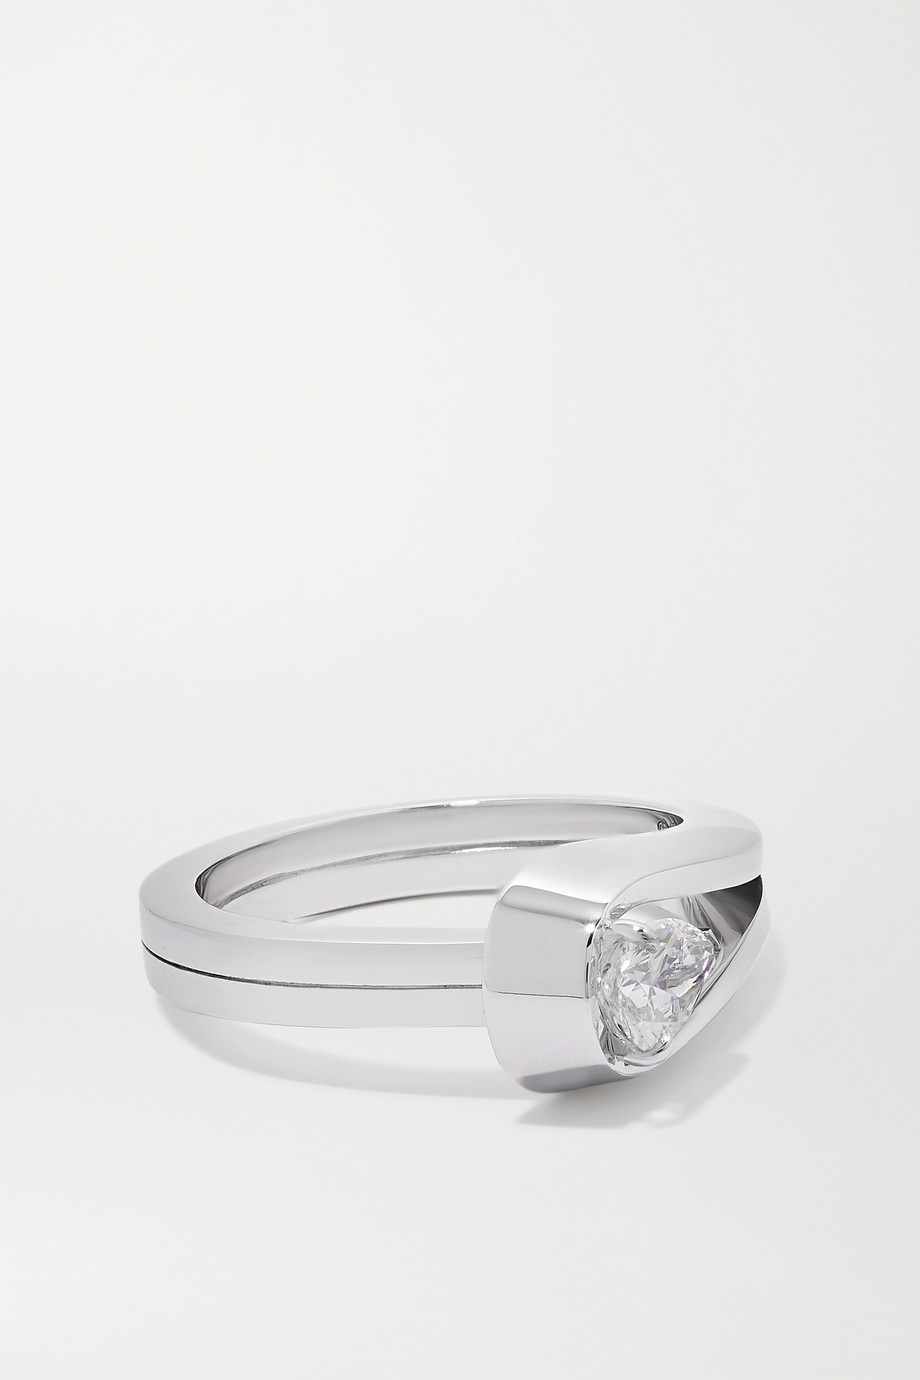 REPOSSI Serti Inversé 18-karat white gold diamond ring